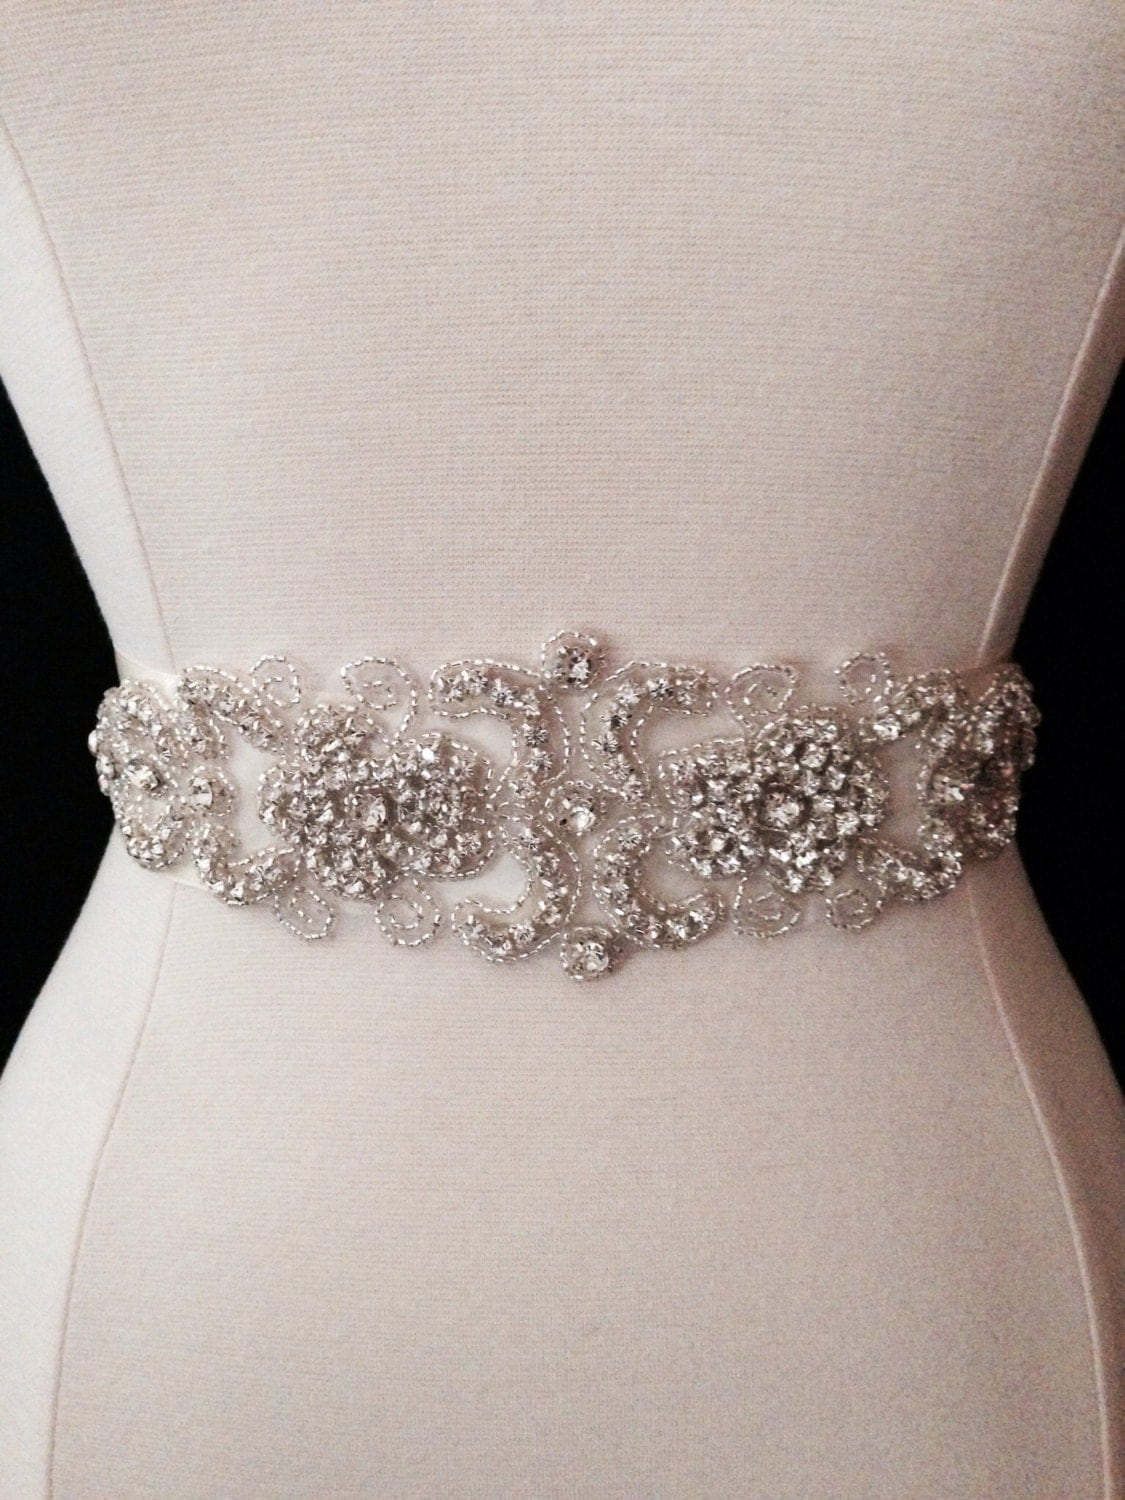 Bridal sash wedding dress sash belt crystal rhinestone for Wedding dress sash with rhinestones